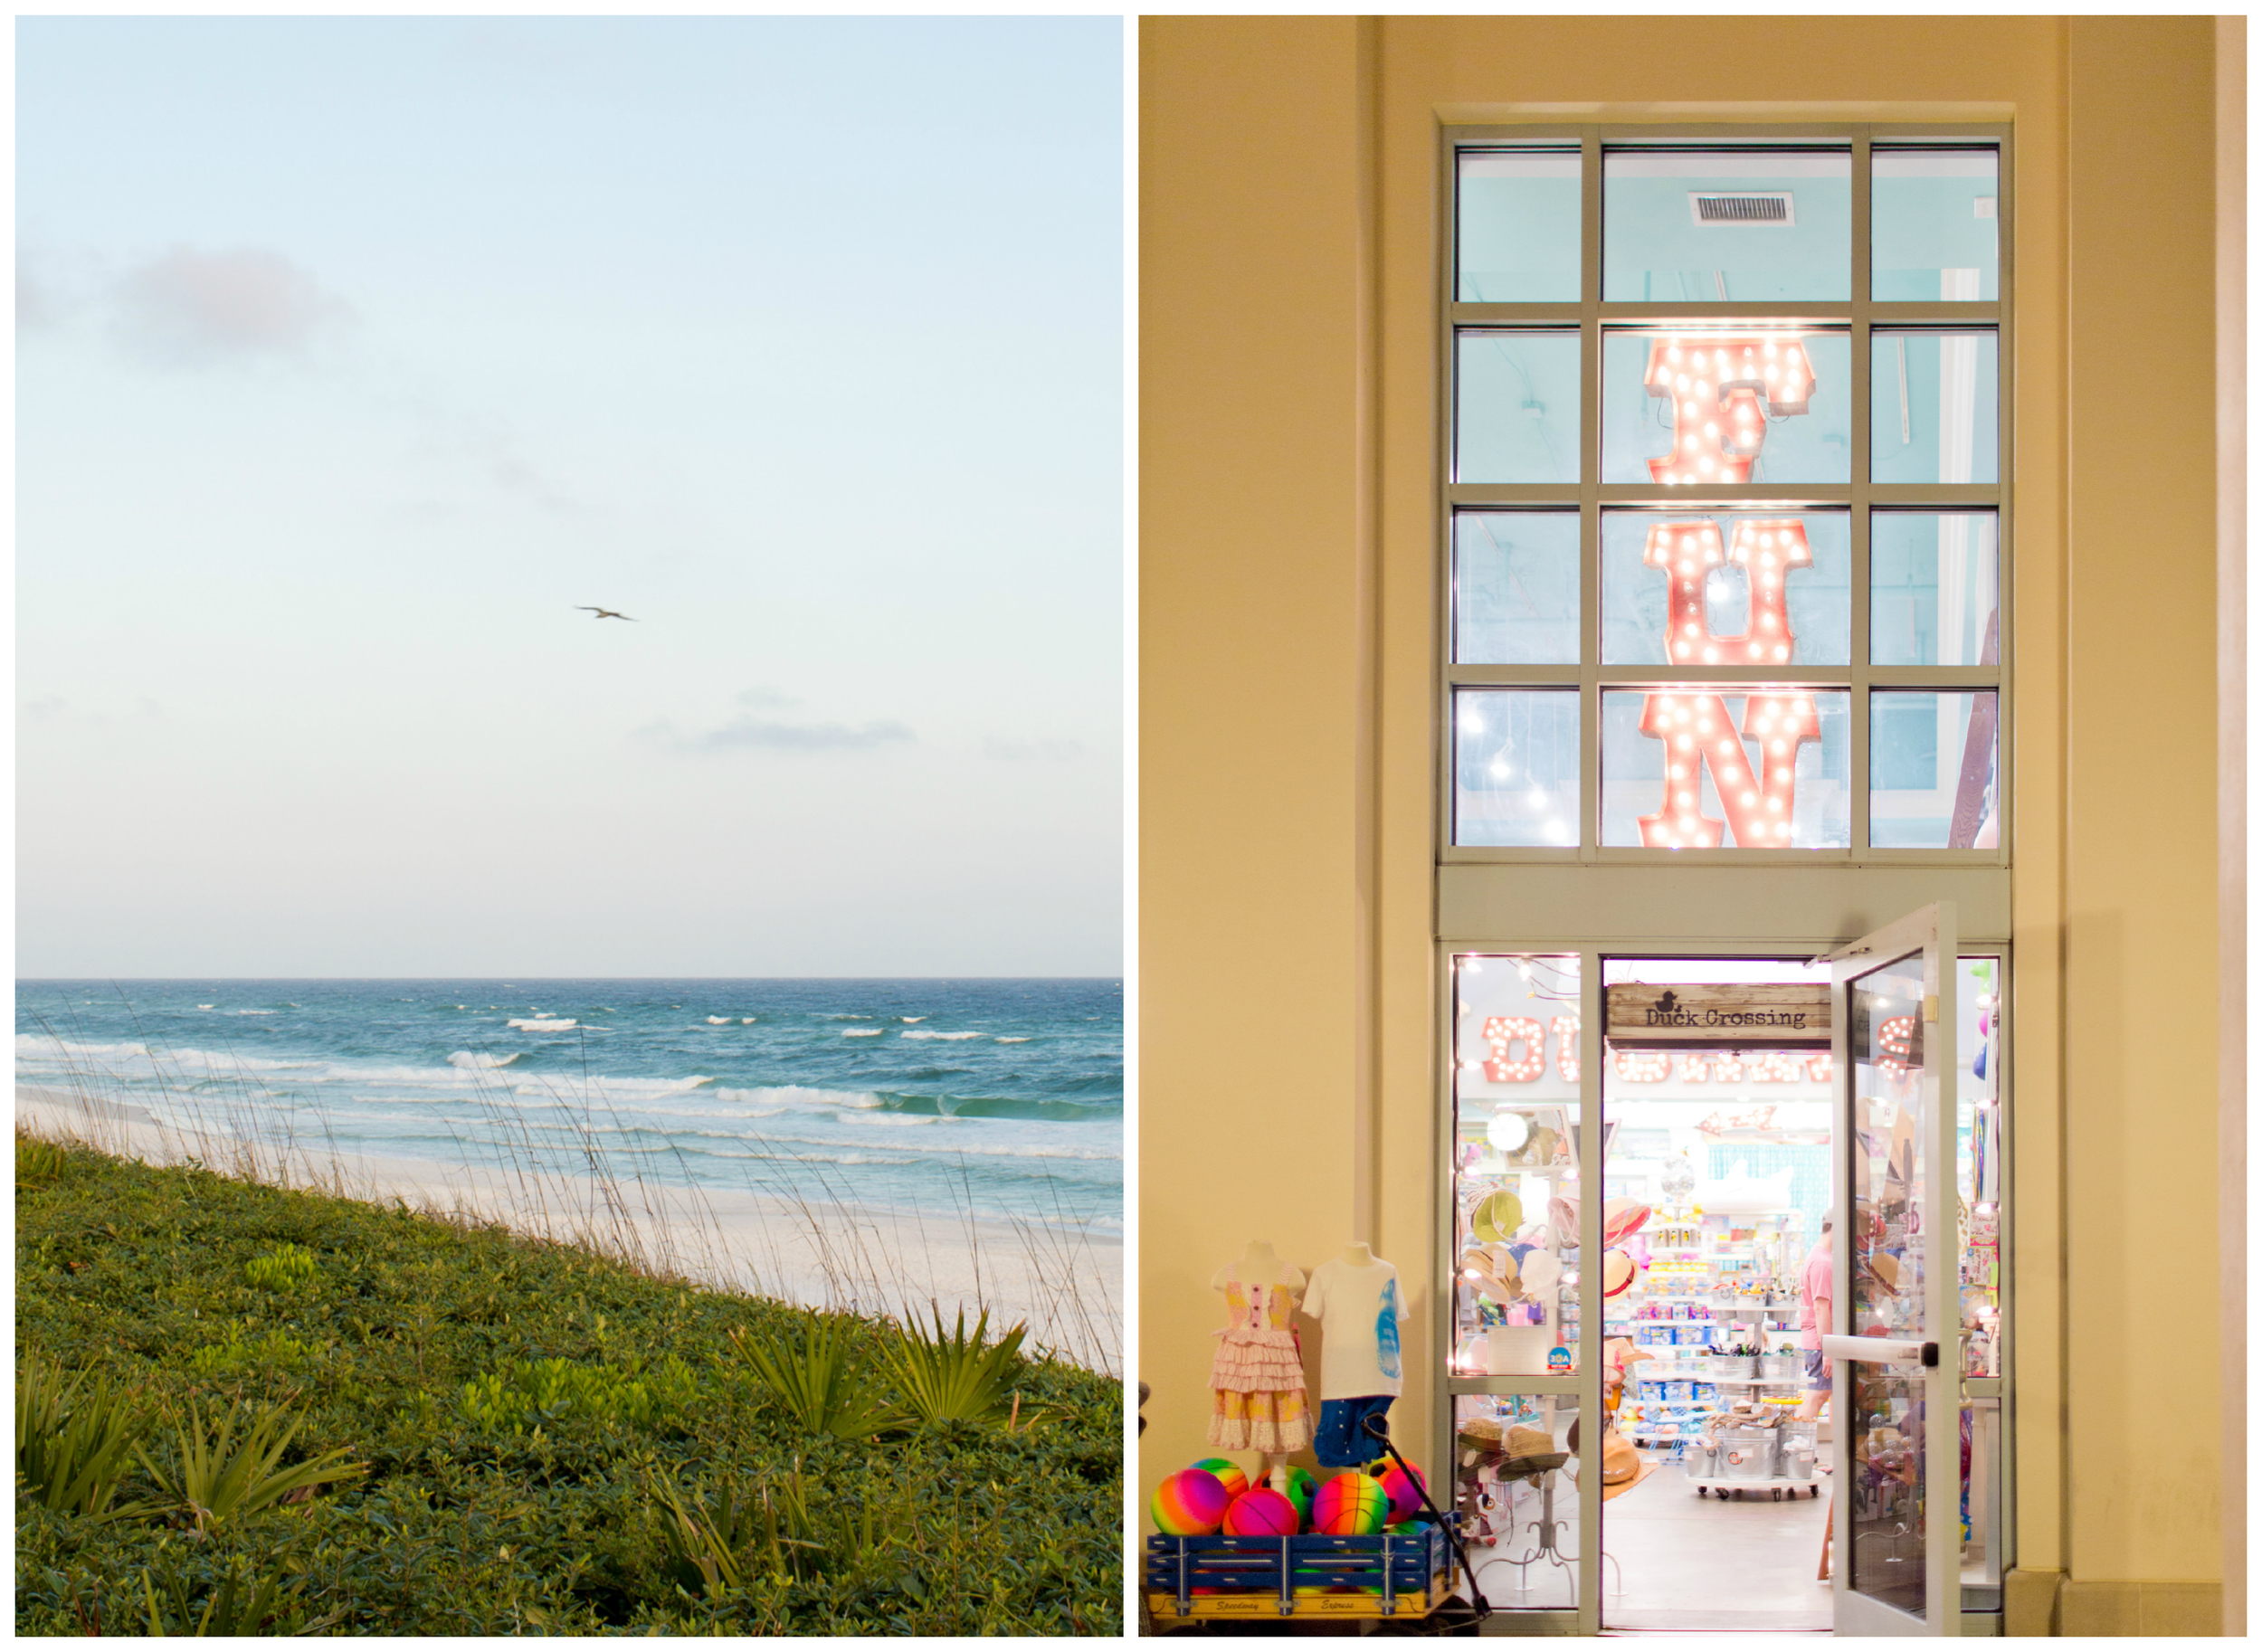 beach view and toy store in Seaside, Florida